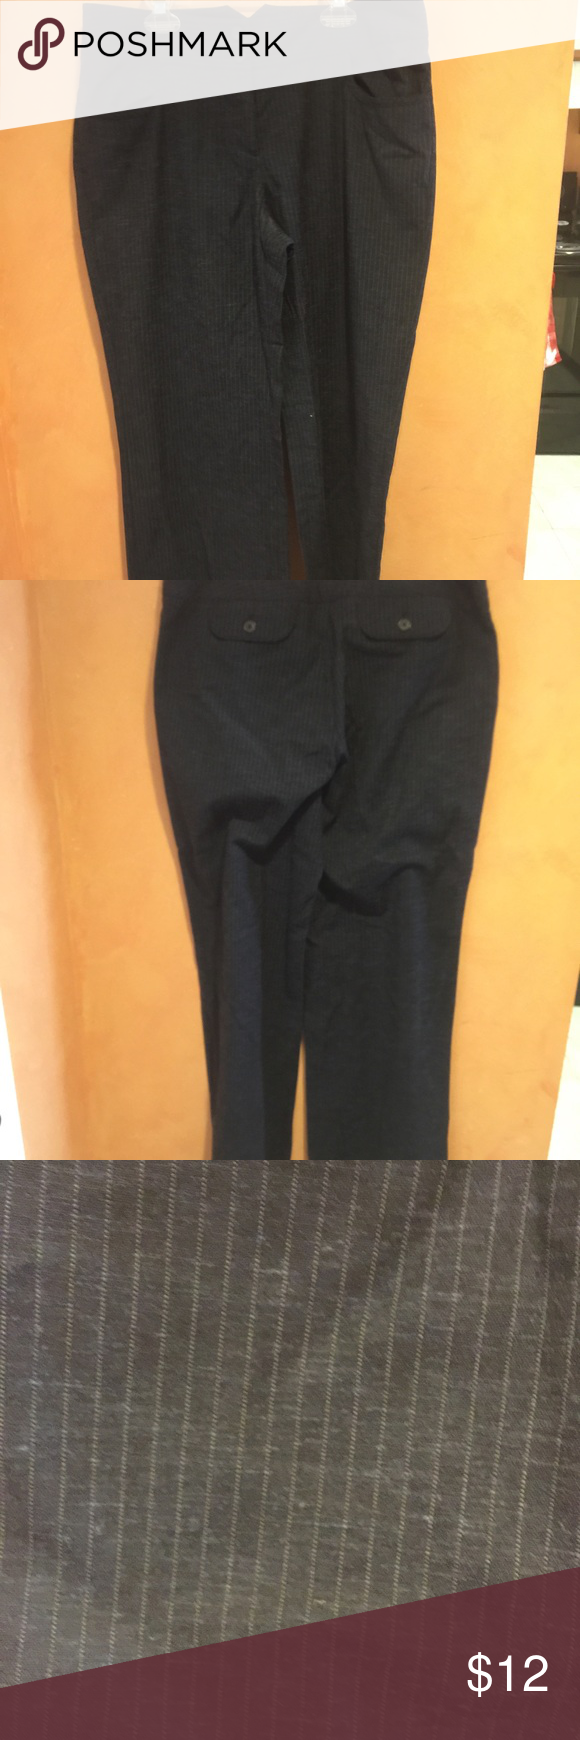 J Jill navy pin stripe pants J Jill navy pin stripe pants. Loose leg and stretch. Excellent condition J Jill Pants Trousers